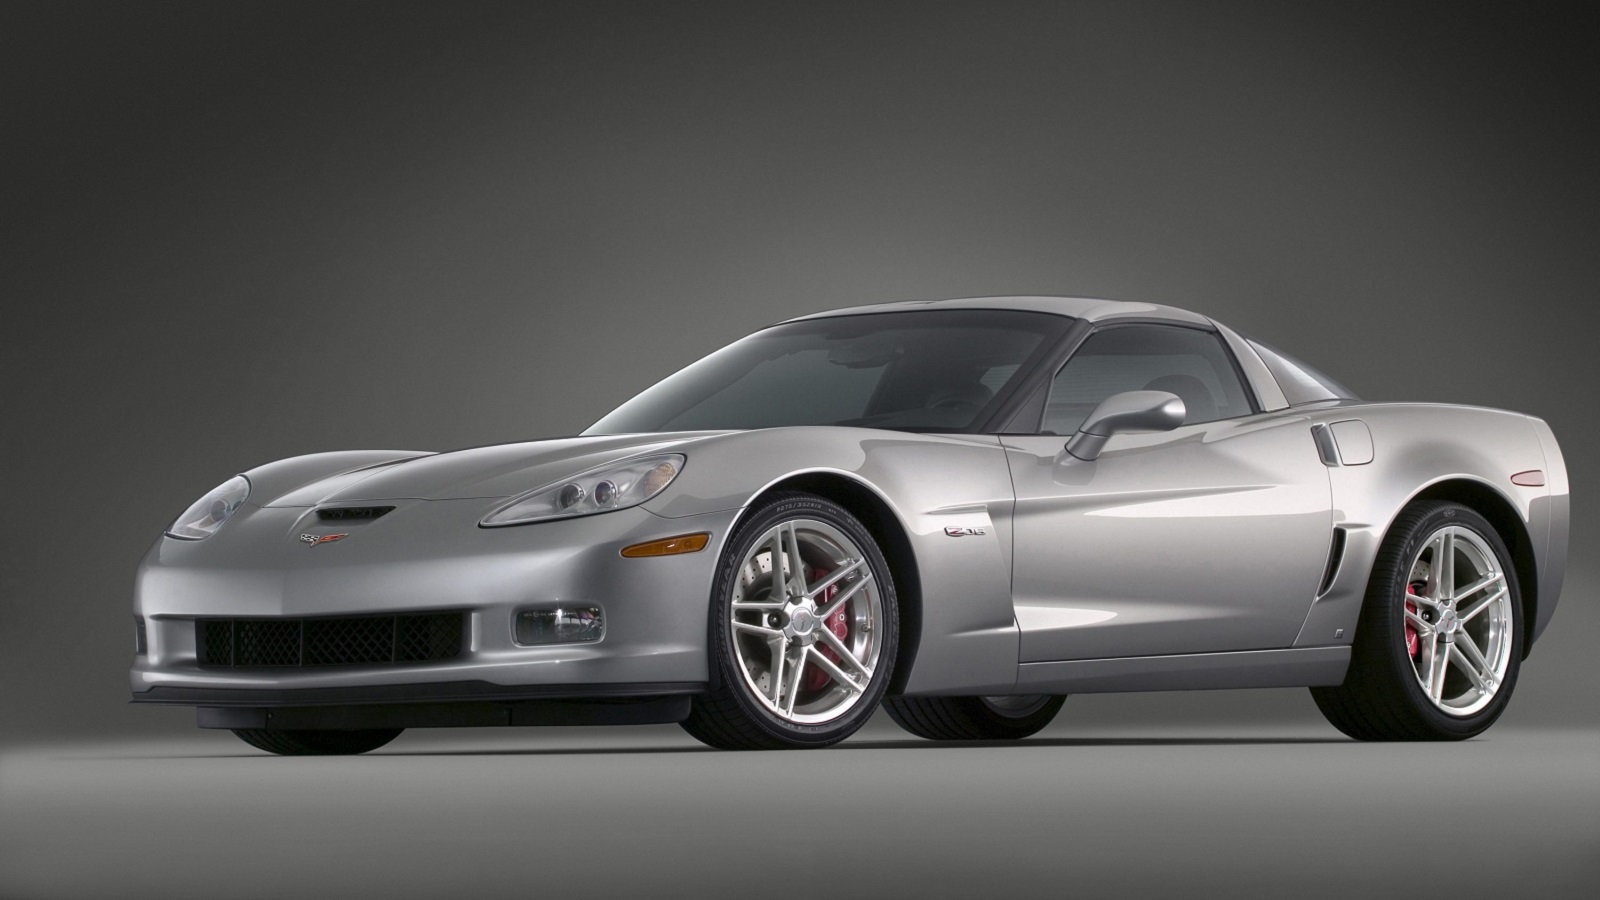 C6 Corvette Styling Changes over the Years